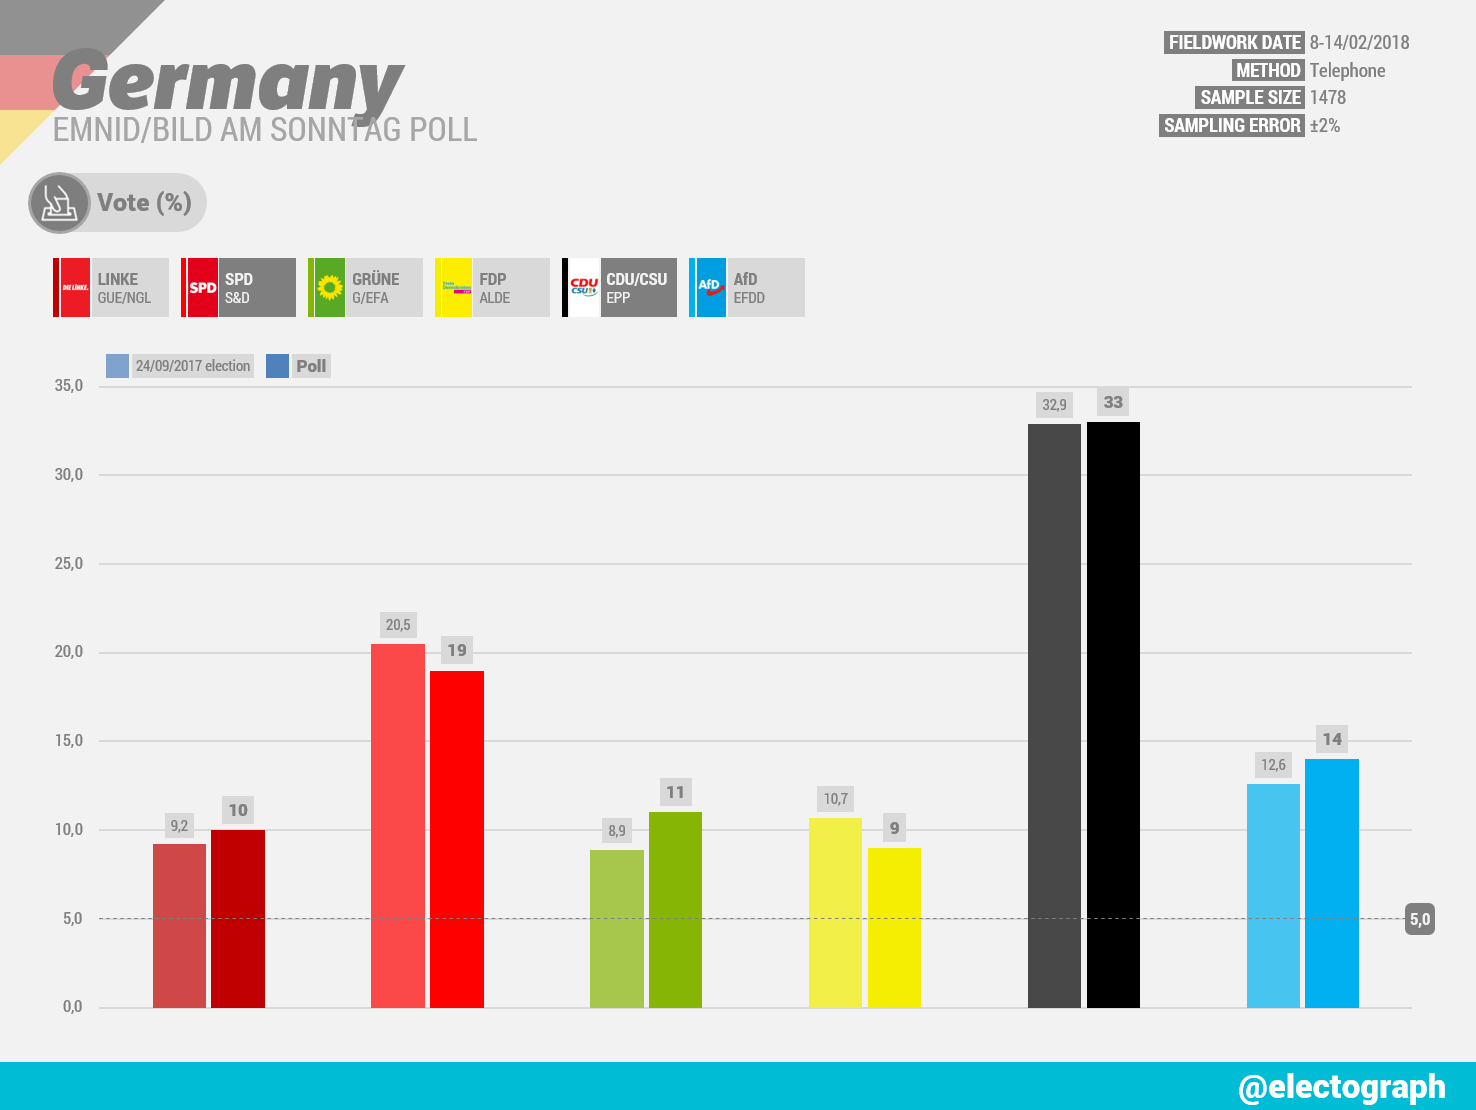 GERMANY Emnid poll chart for Bild am Sonntag, February 2018